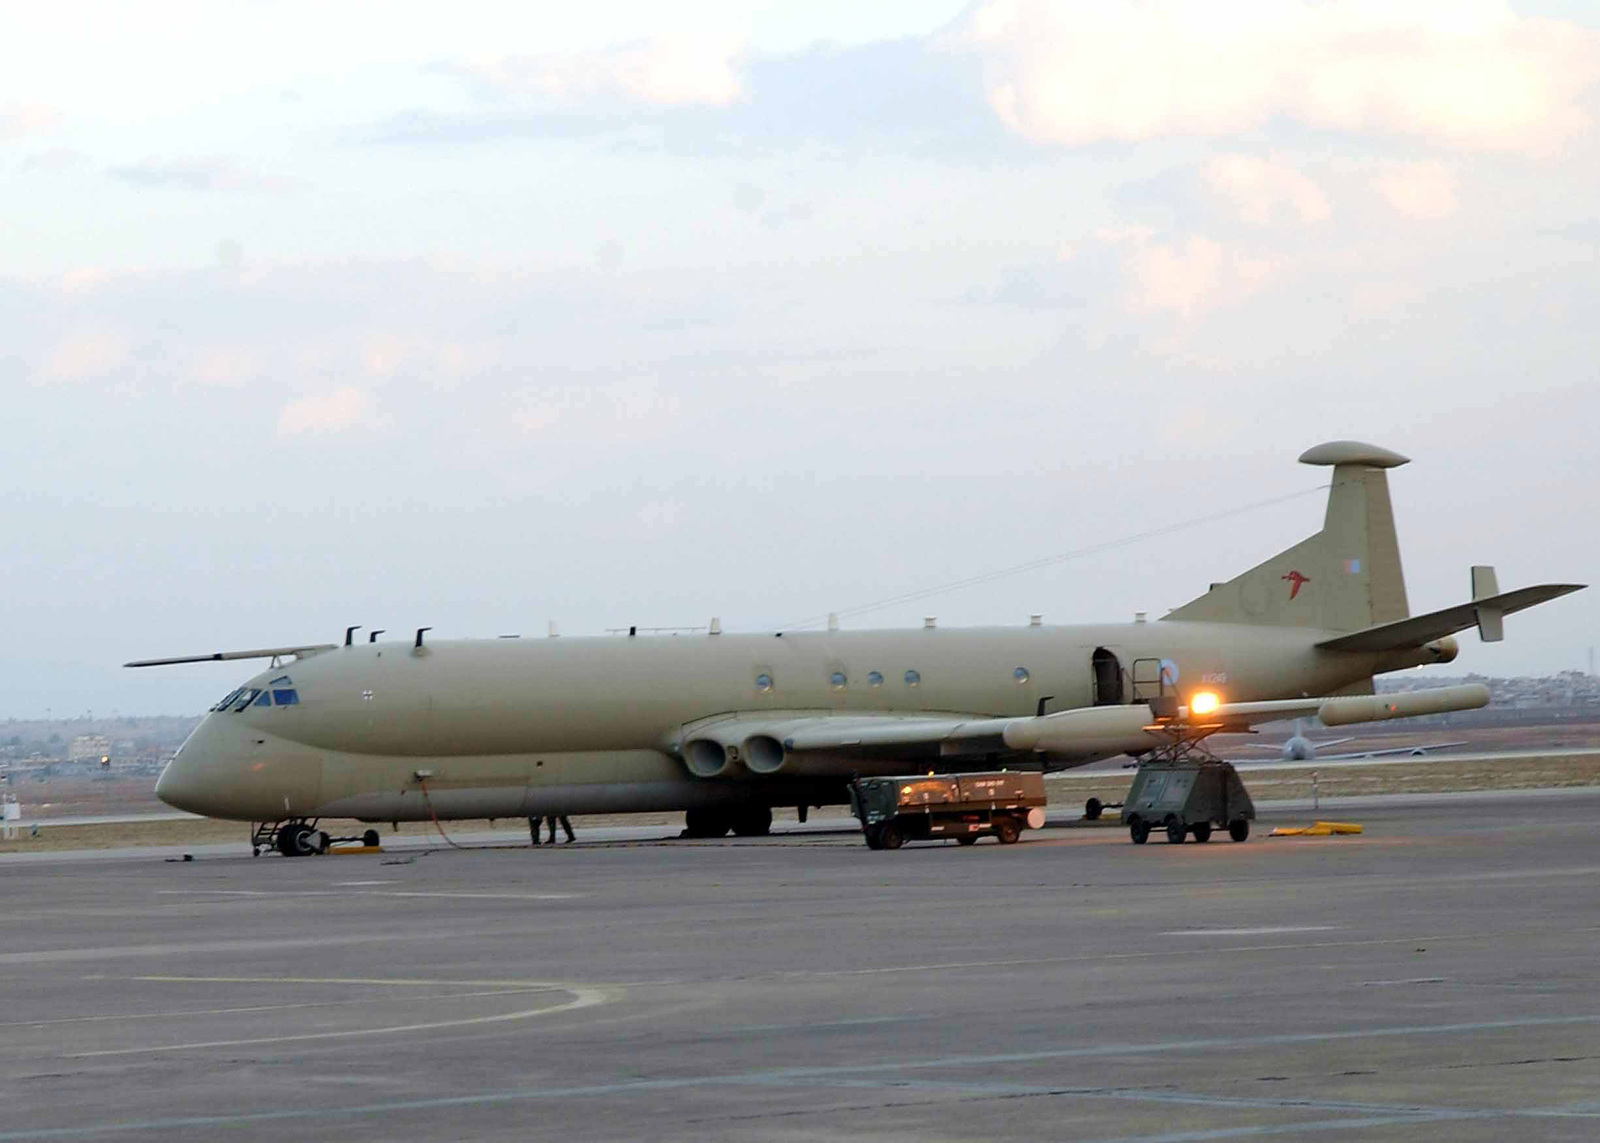 A British (UK) Royal Air Force (RAF) MR. Mk 2 Nimrod maritime patrol aircraft assigned to the 51 Squadron, sits on the tarmac prior to a sortie from Incirlik Air Base (AB), Turkey, during Combined Task Force, Operation NORTHERN WATCH